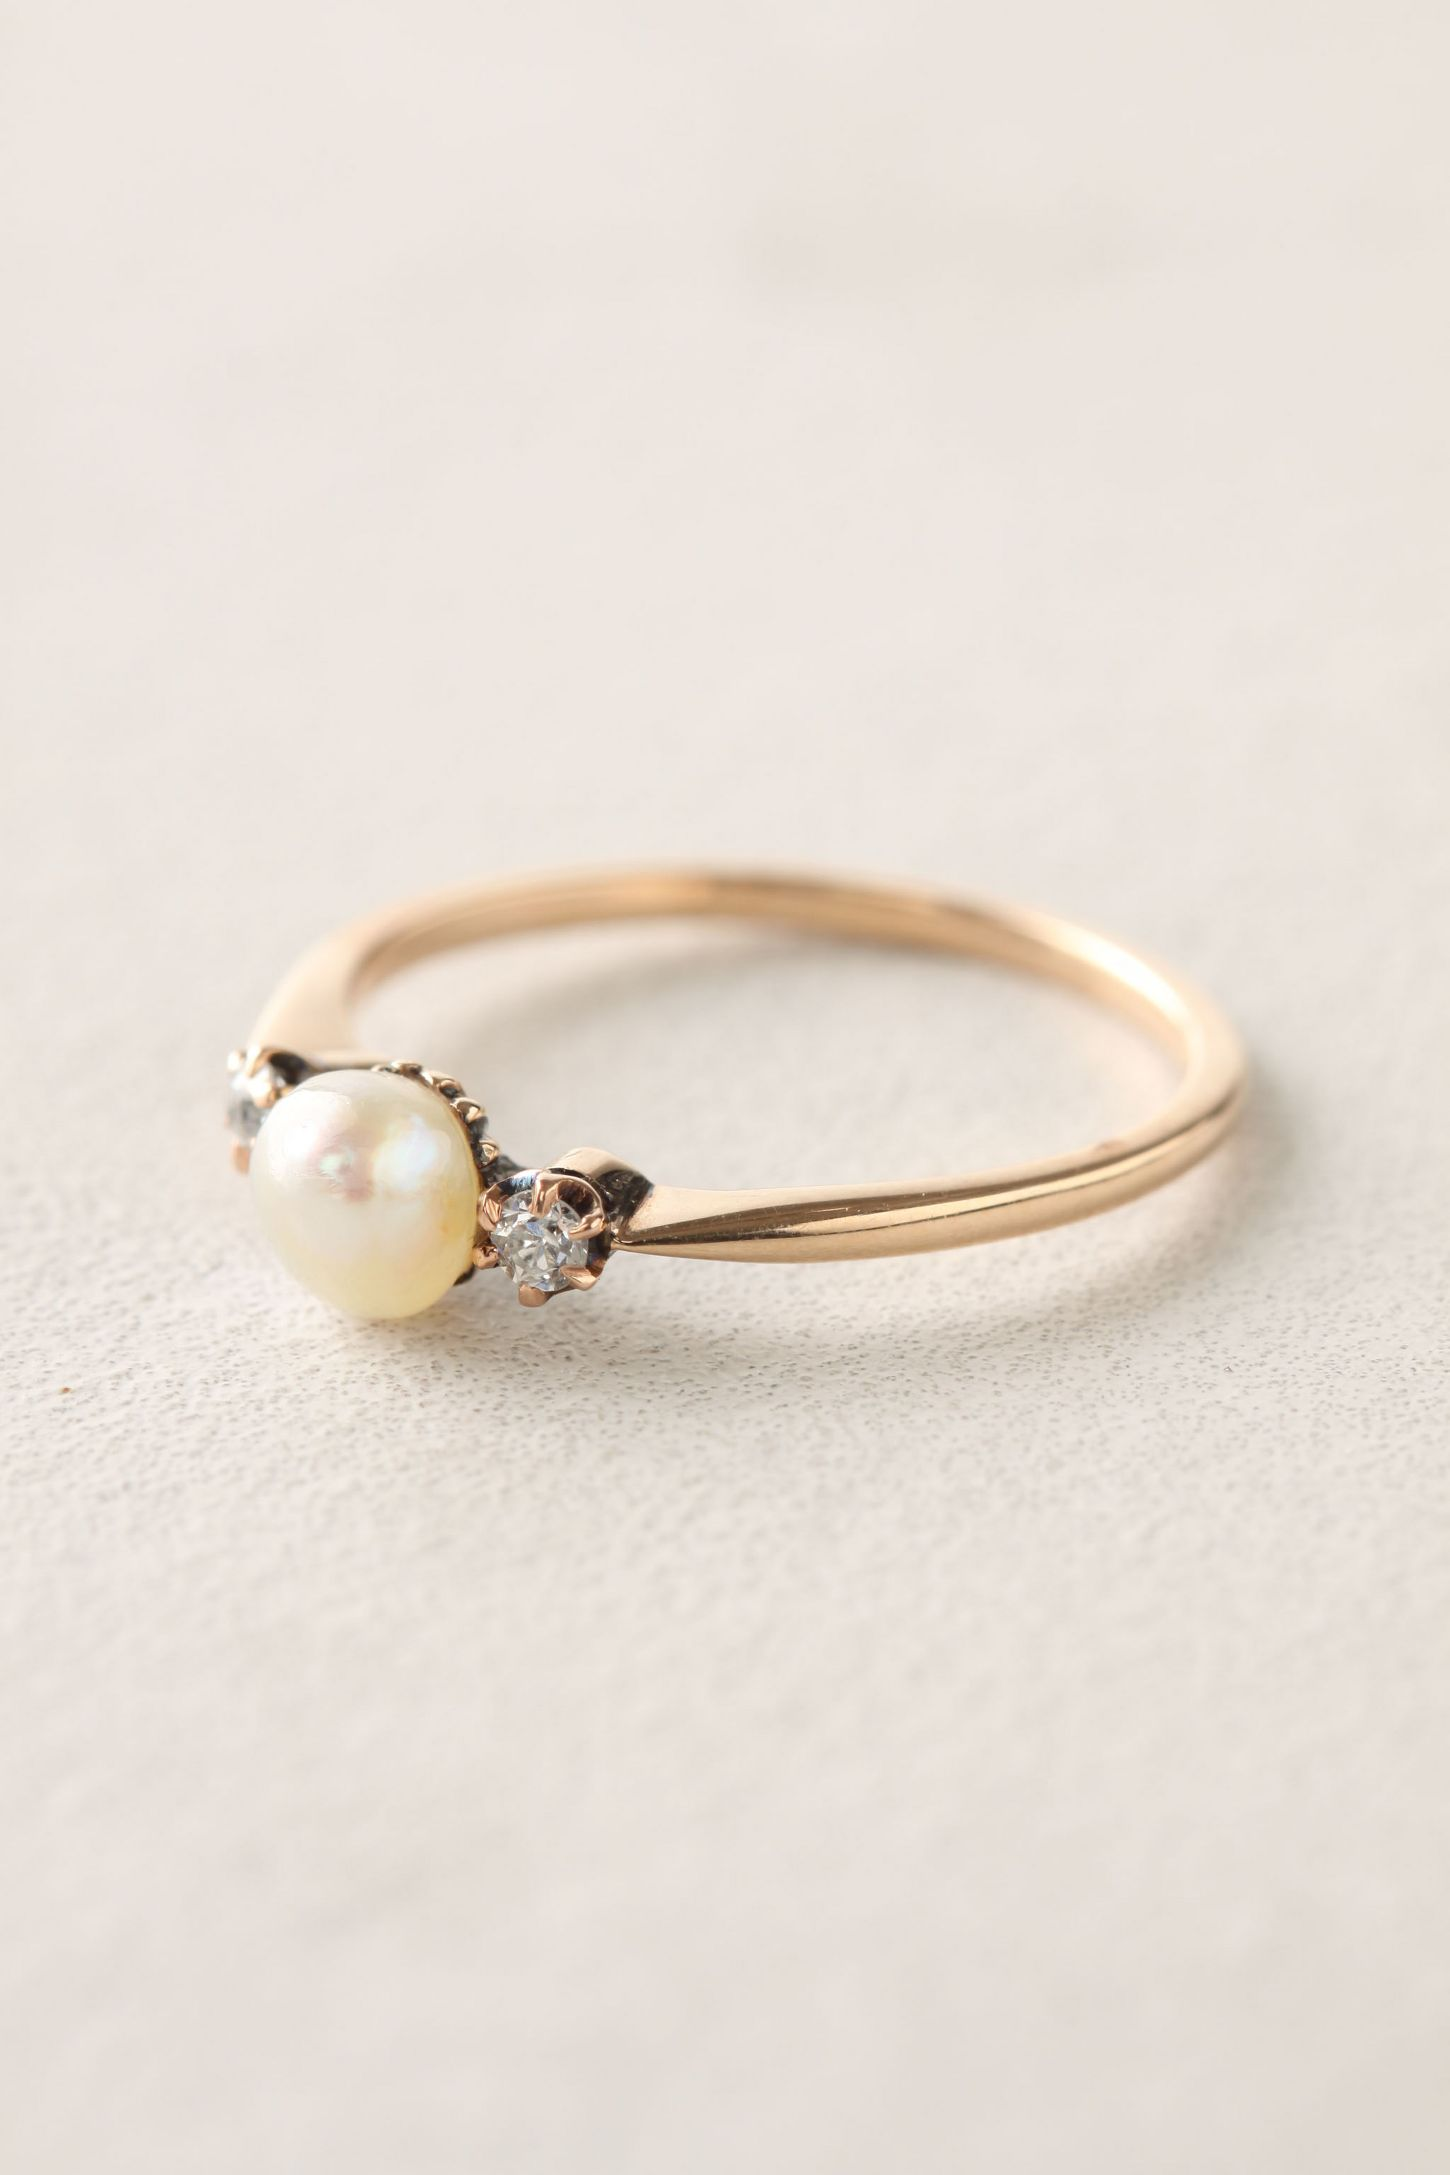 Lovely Wedding Rings with Pearl